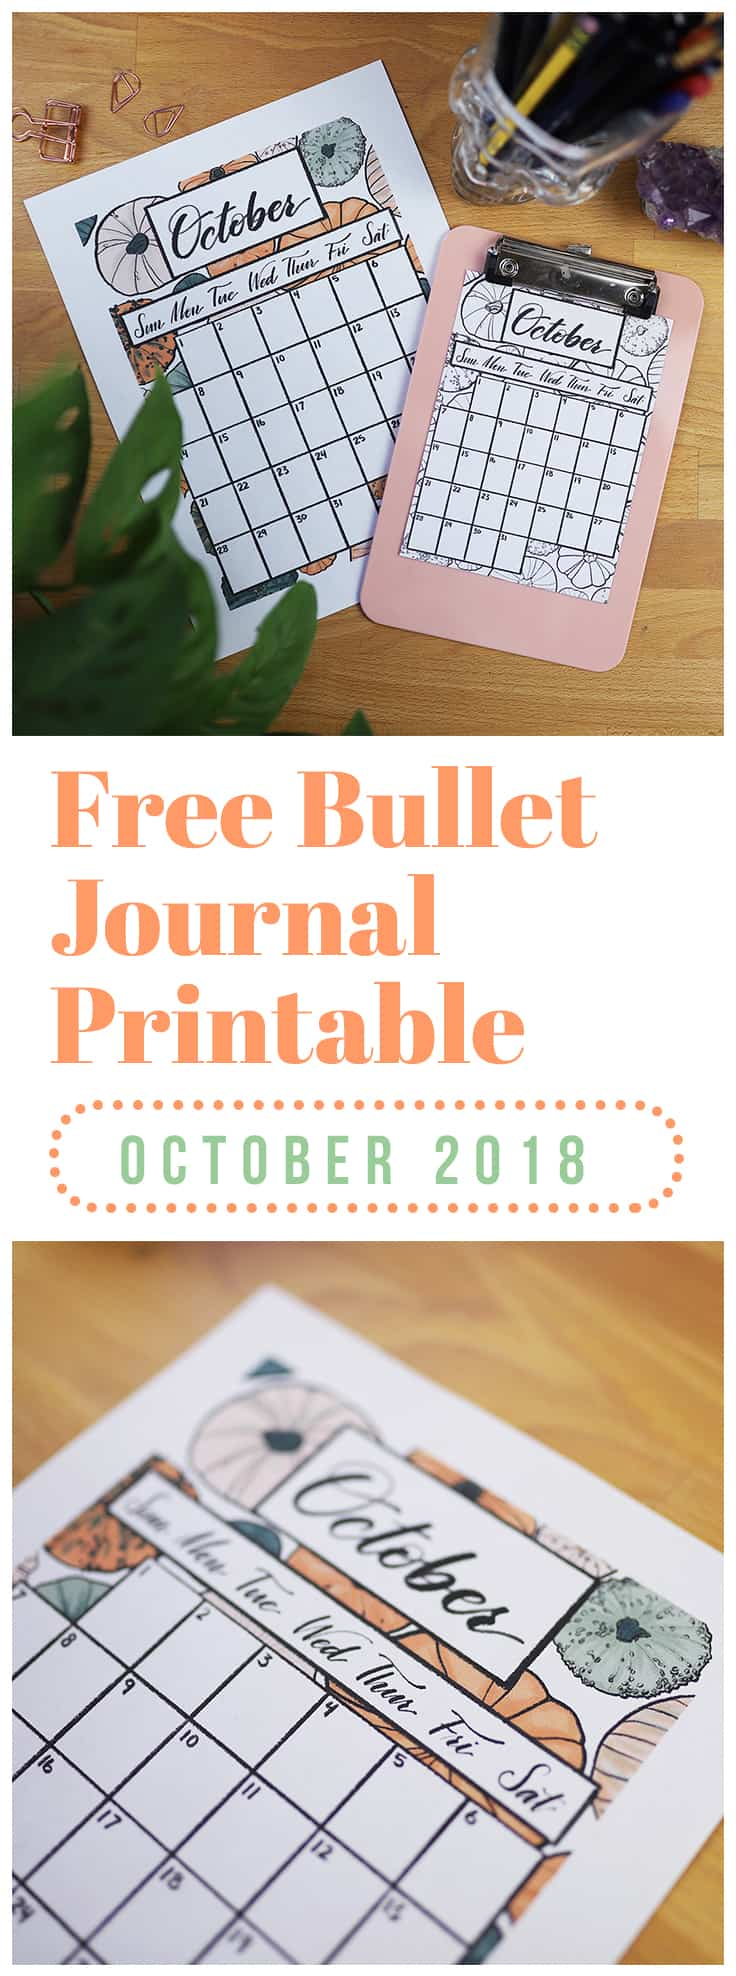 Are you ready for October? I am so pumped for my favorite month of the year, and this October 2018 calendar printable reflects my excitement! You can get this printable in four different formats so you can ensure that it fits your planner system seamlessly. And it's totally free! #printable #calendar #freebie #october2018 #october